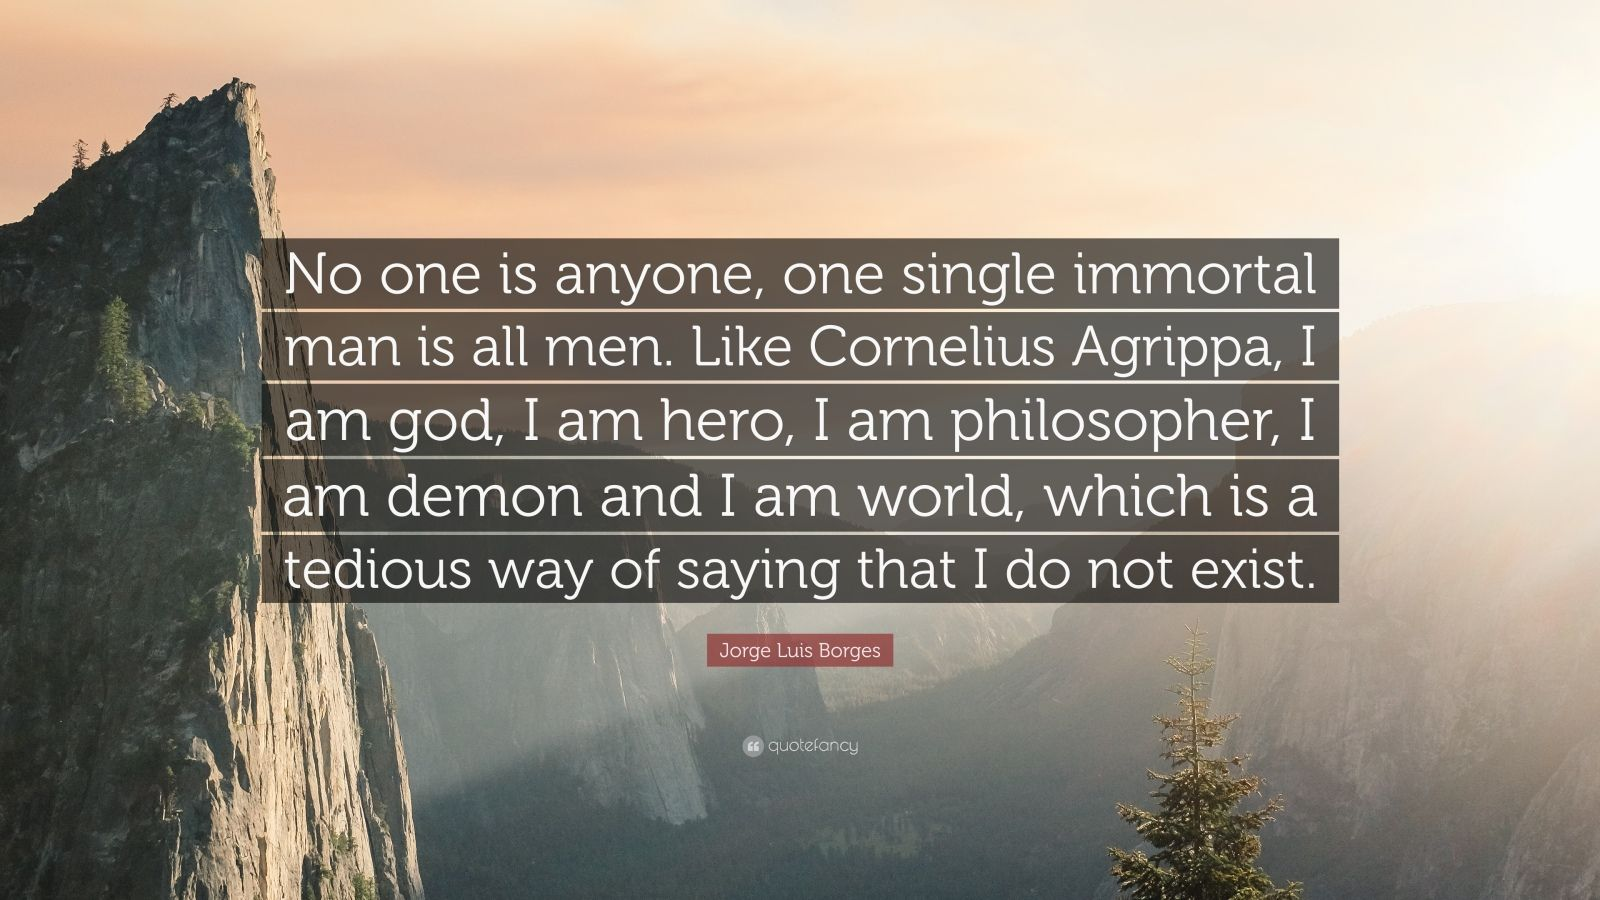 """Jorge Luis Borges Quote: """"No one is anyone, one single immortal man is all men. Like Cornelius Agrippa, I am god, I am hero, I am philosopher, I am demon and I am world, which is a tedious way of saying that I do not exist."""""""